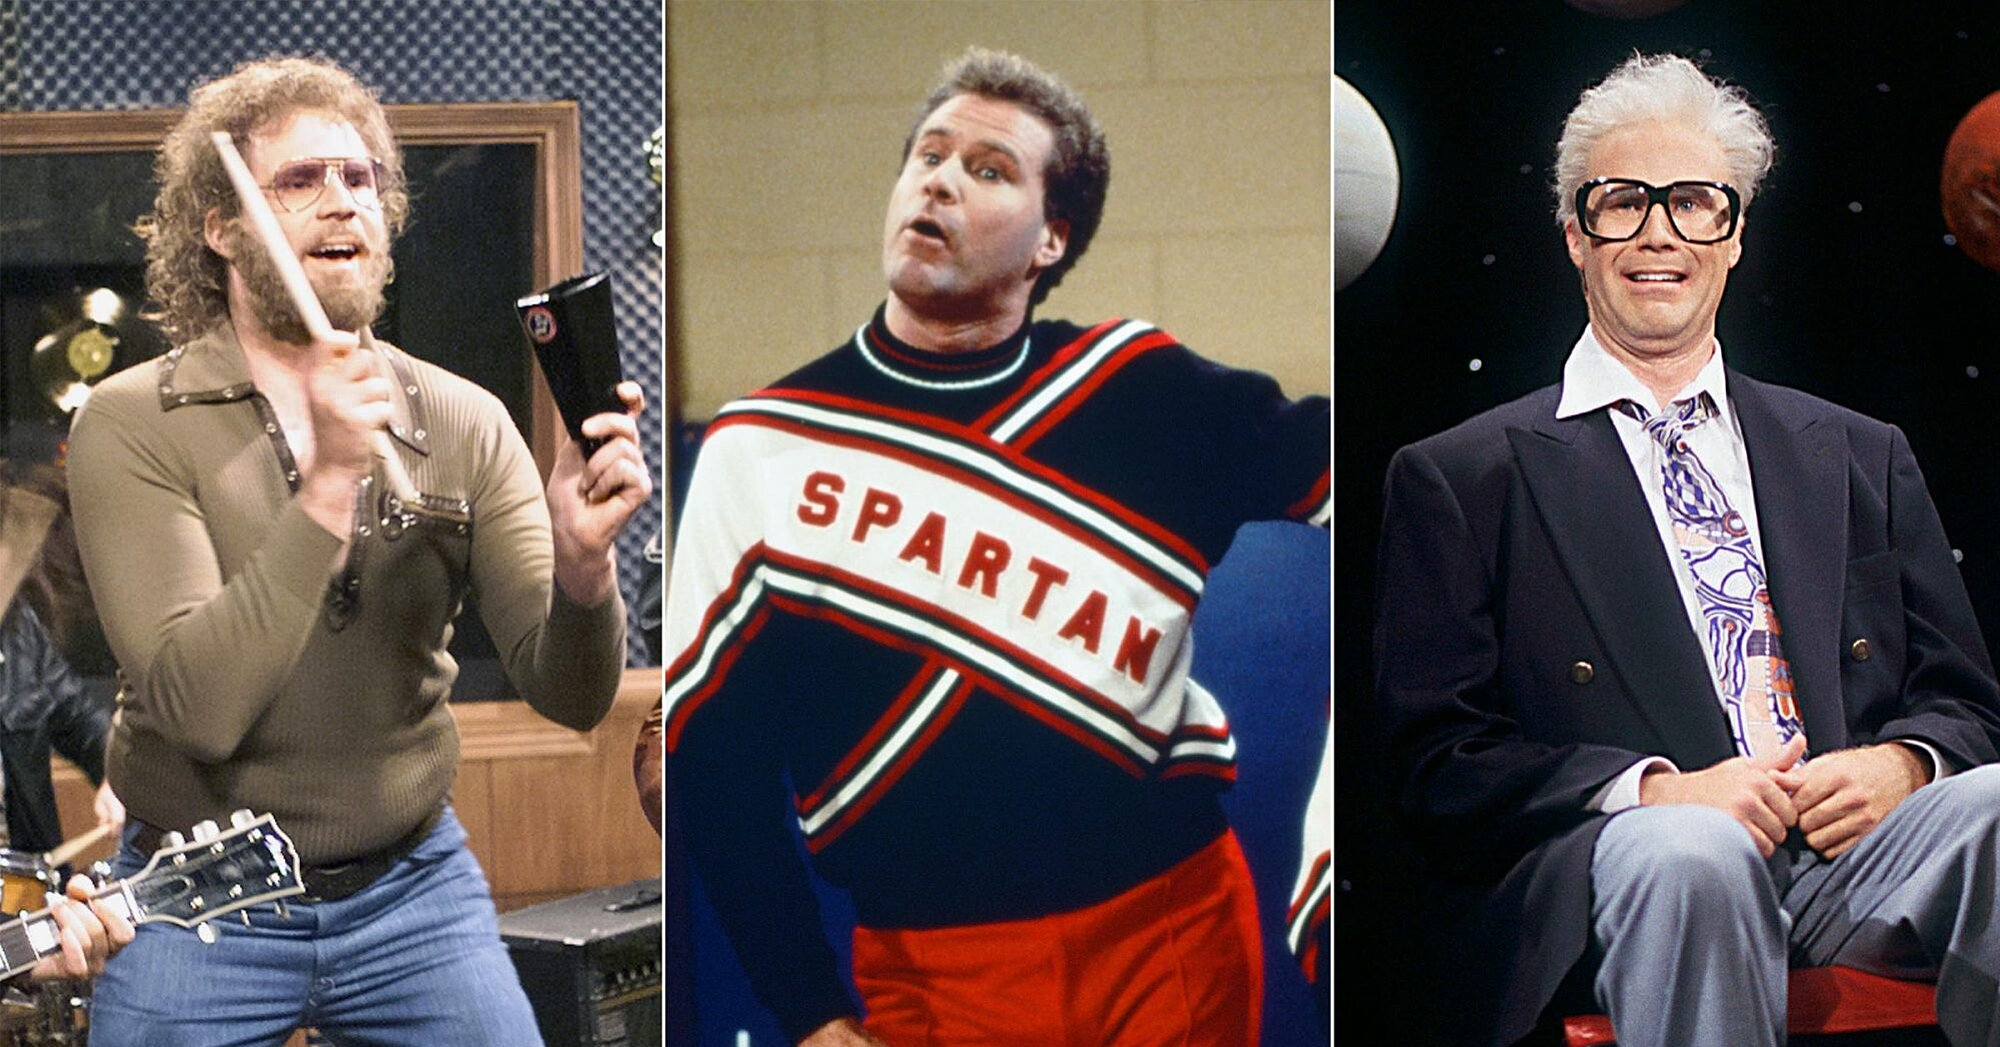 The 12 best Will Ferrell sketches on Saturday Night Live, from 'More Cowbell' to Harry Caray